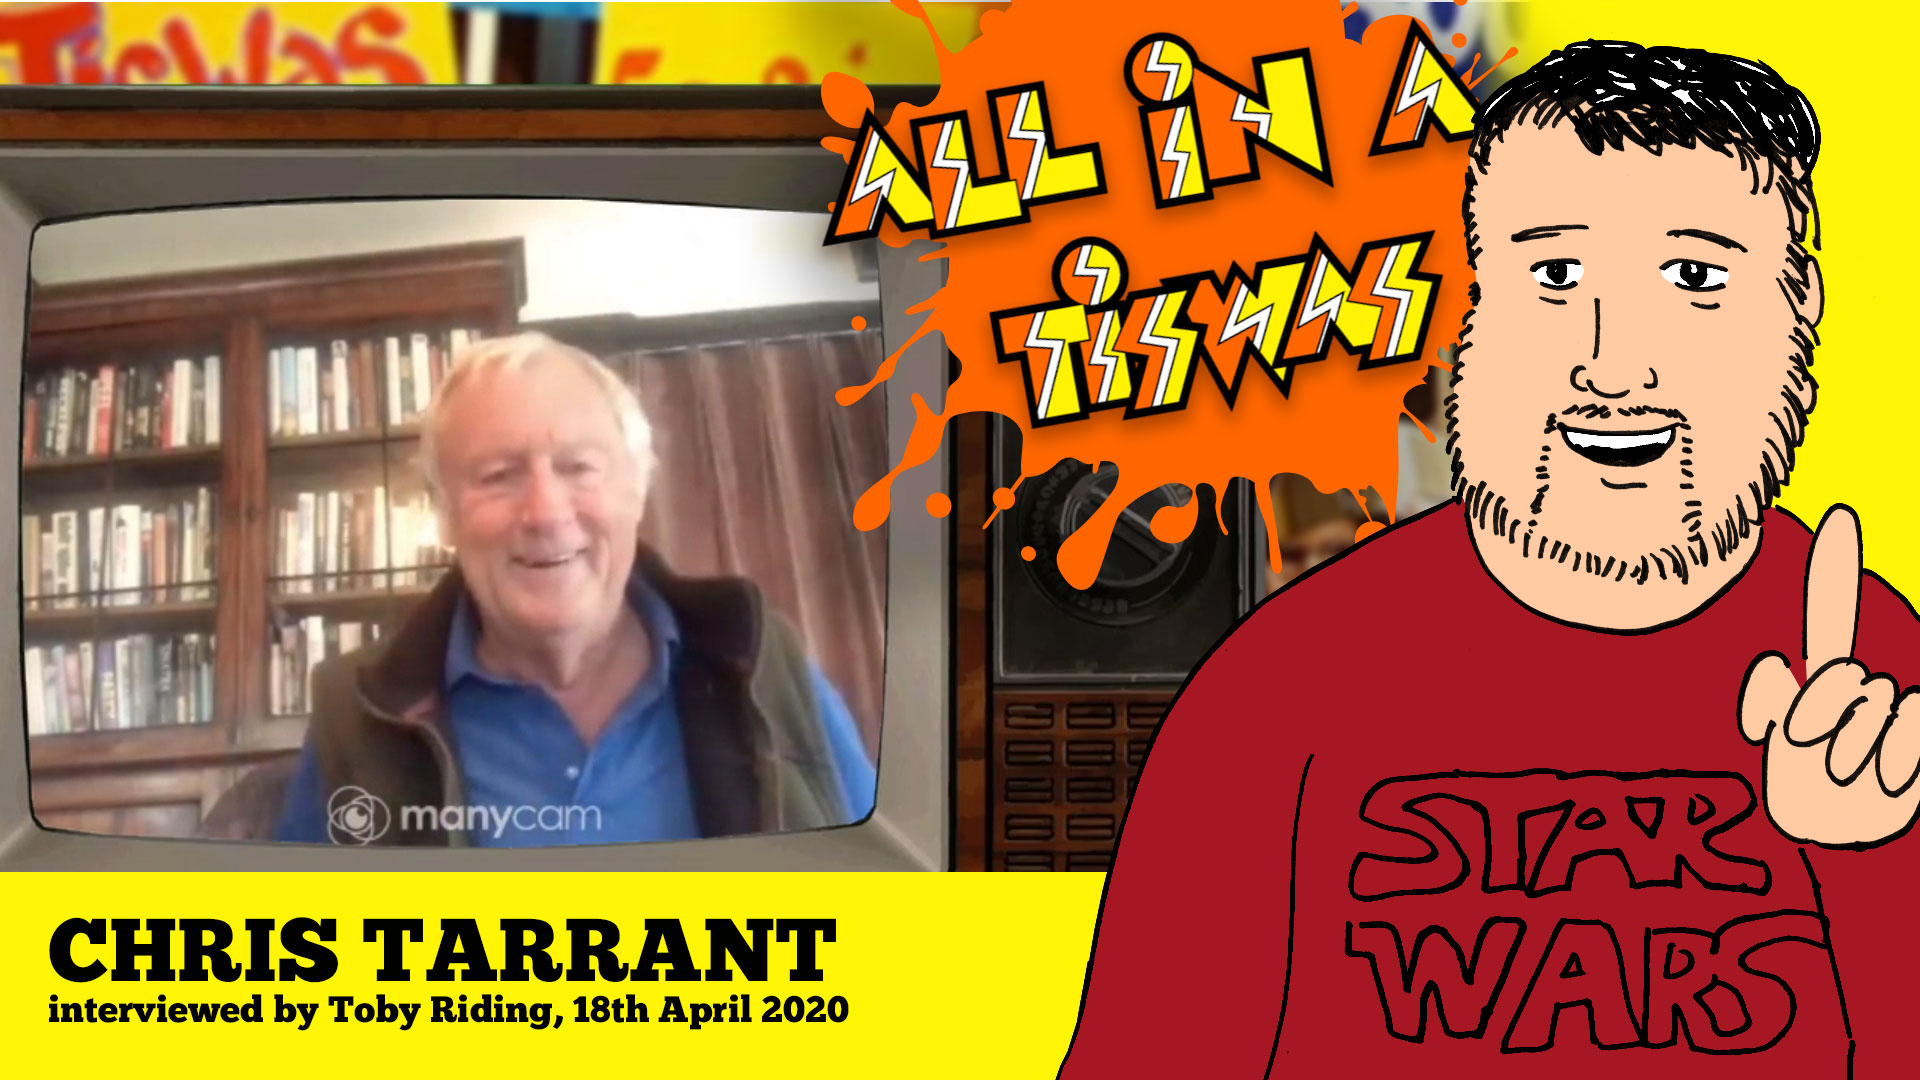 Chris Tarrant interview